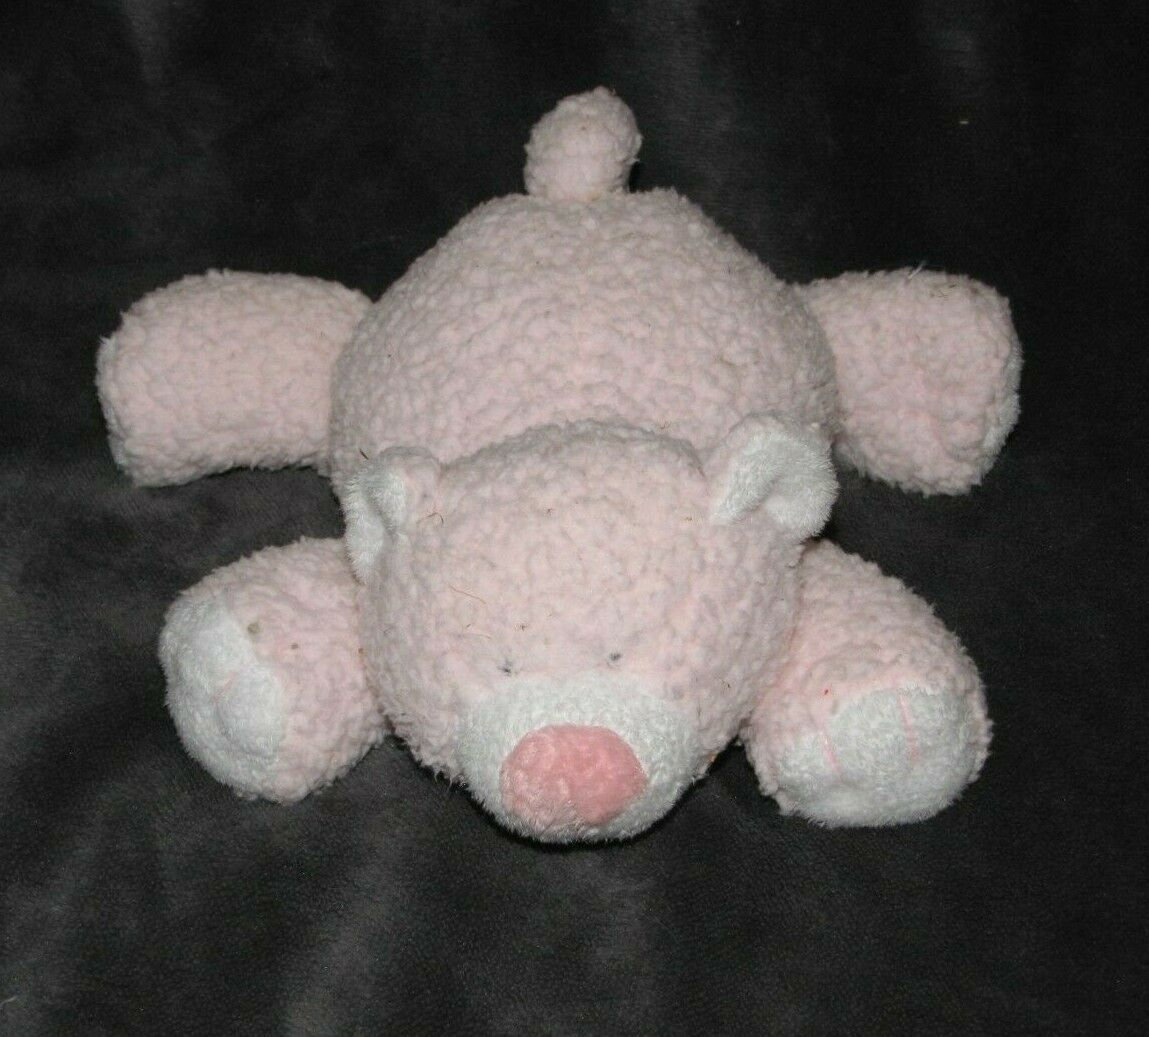 Primary image for TY PLUFFIES 2005 CUBBY CUDDLES LOVE TO BABY TEDDY BEAR PINK STUFFED ANIMAL PLUSH